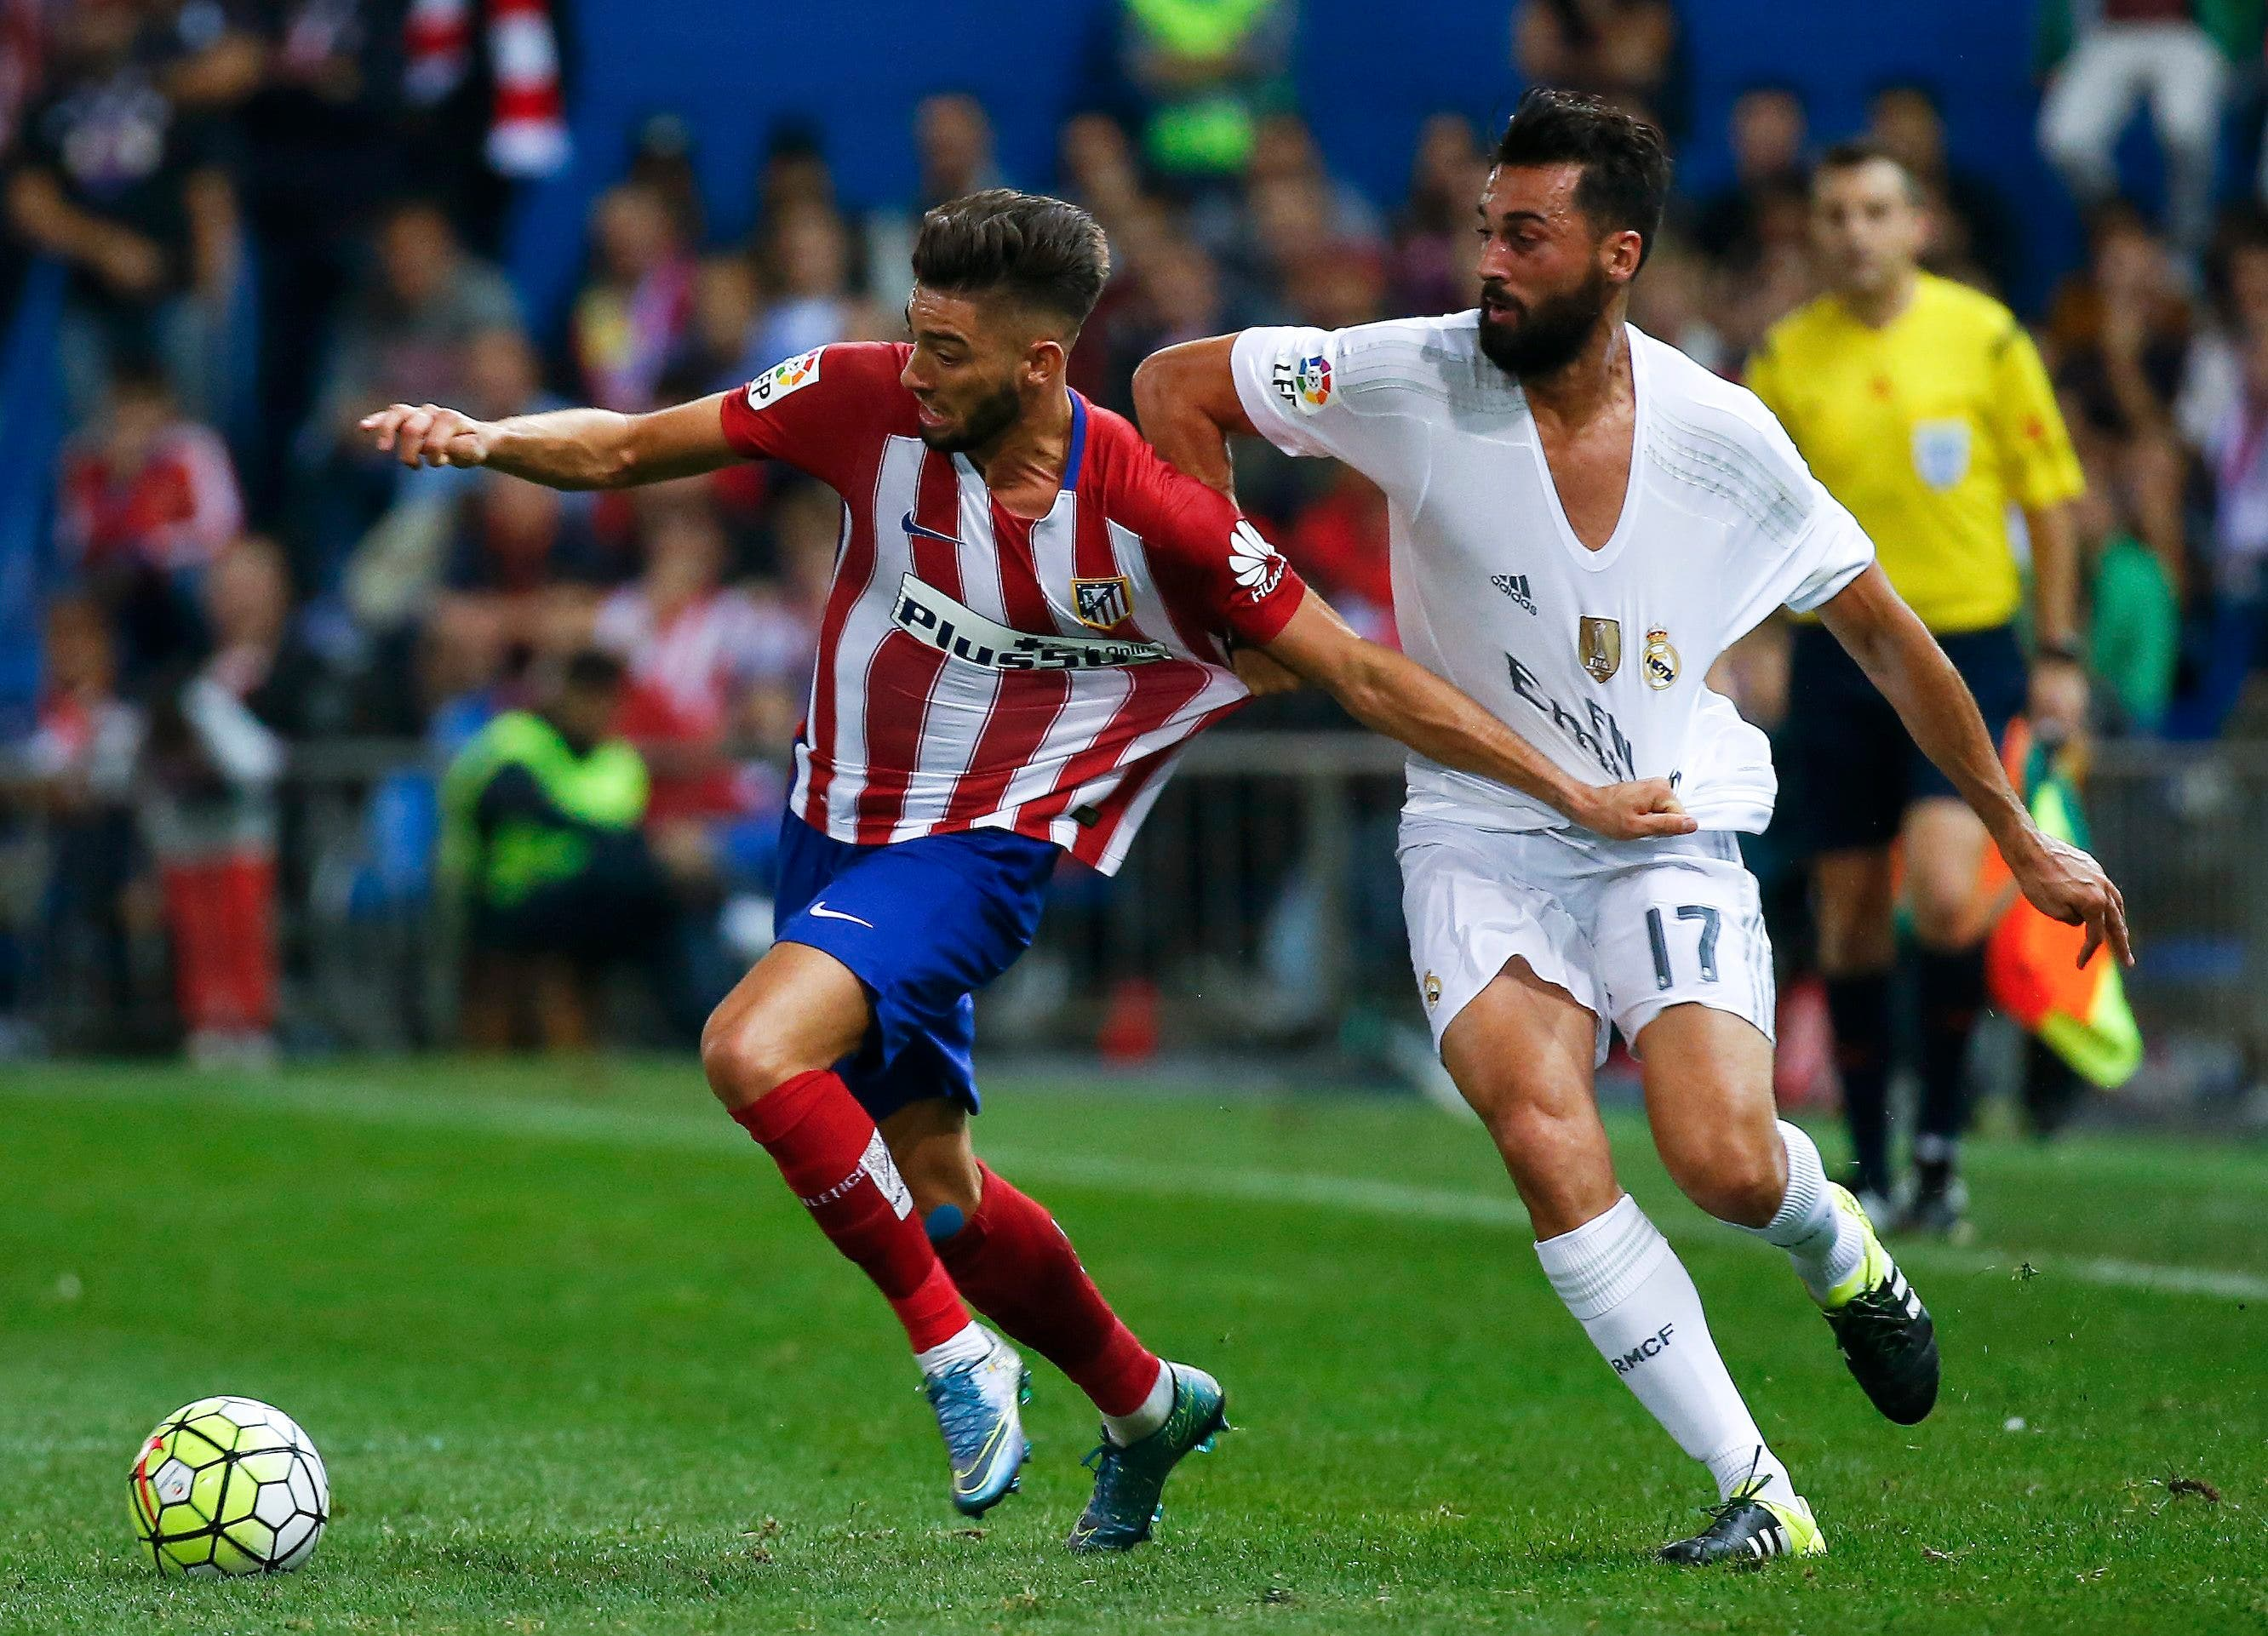 Atletico Madrid's Yannick Carrasco is challenged by Real Madrid's Alvaro Arbeloa during their Spanish first division derby soccer match in Madrid